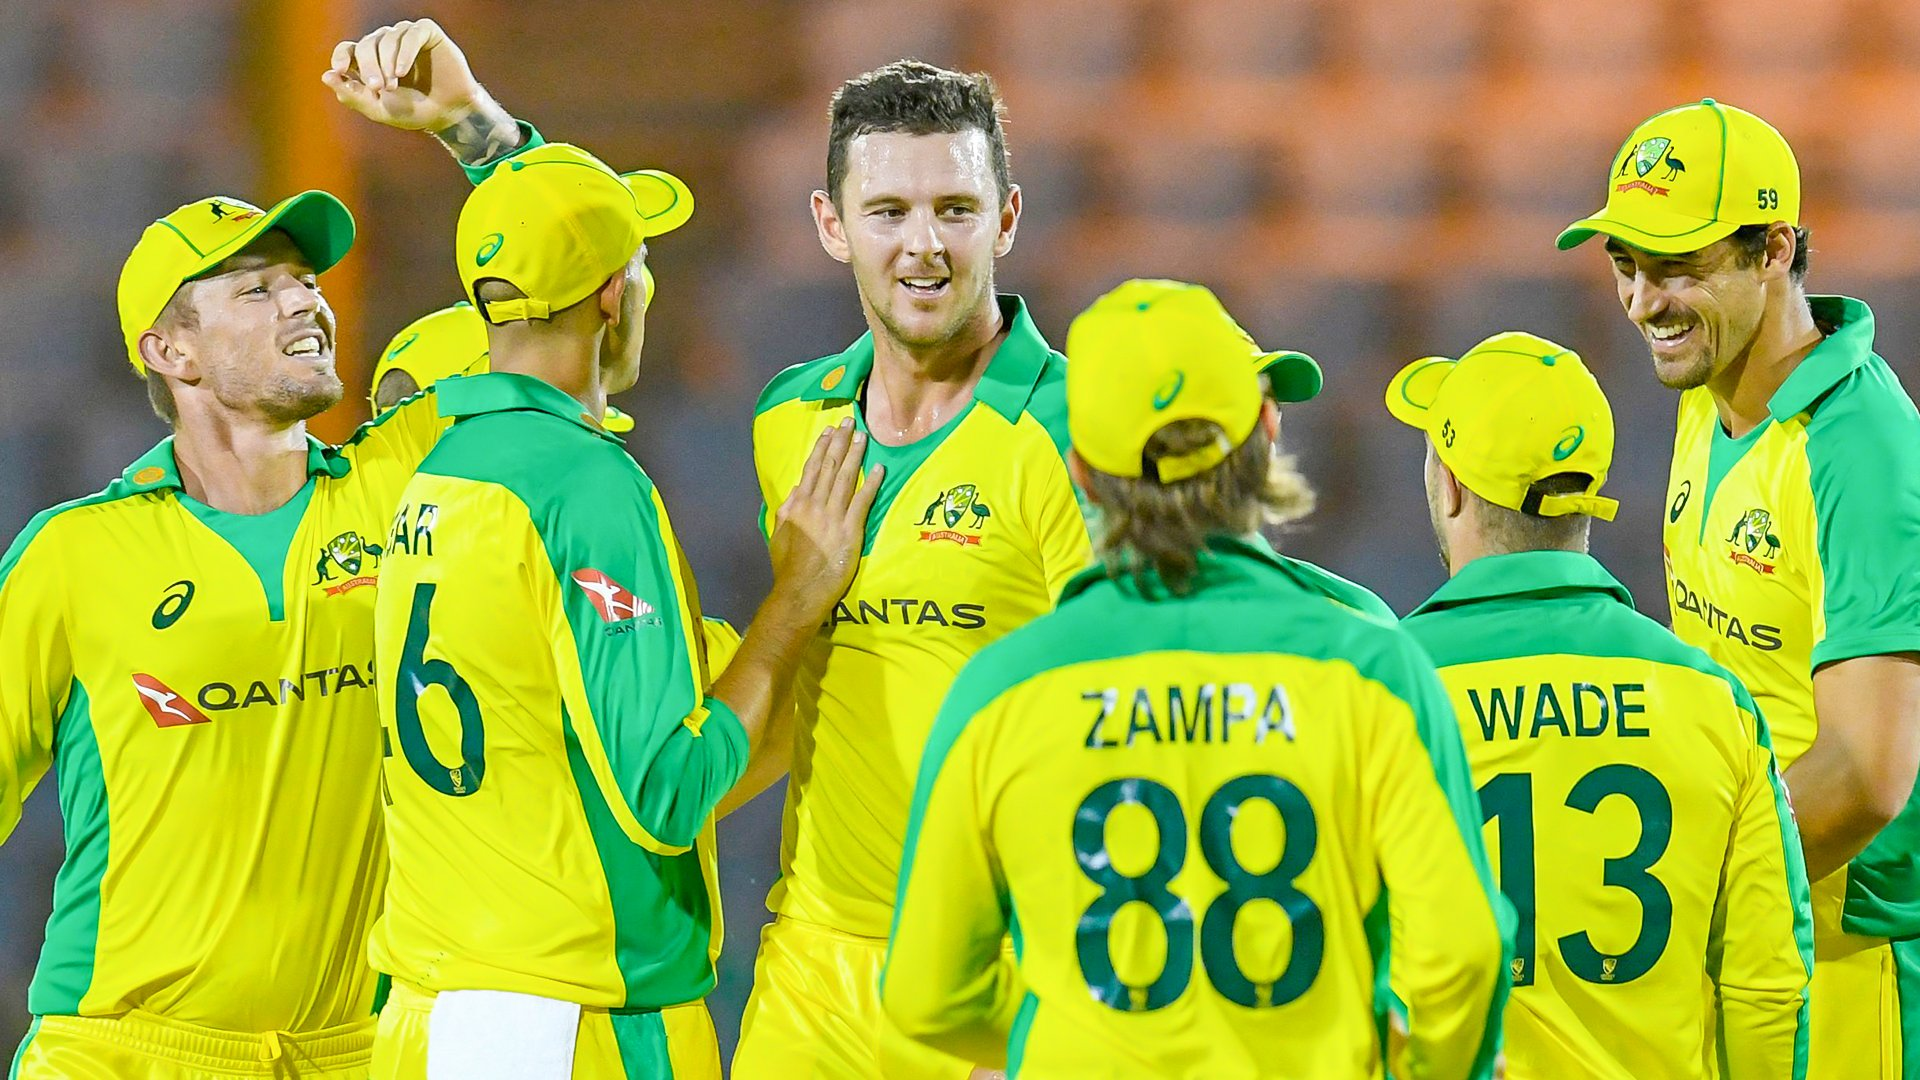 Focus Is On To Keep This Series Alive - Andrew McDonald Hints At Changes In Australia's XI For 3rd T20I vs West Indies